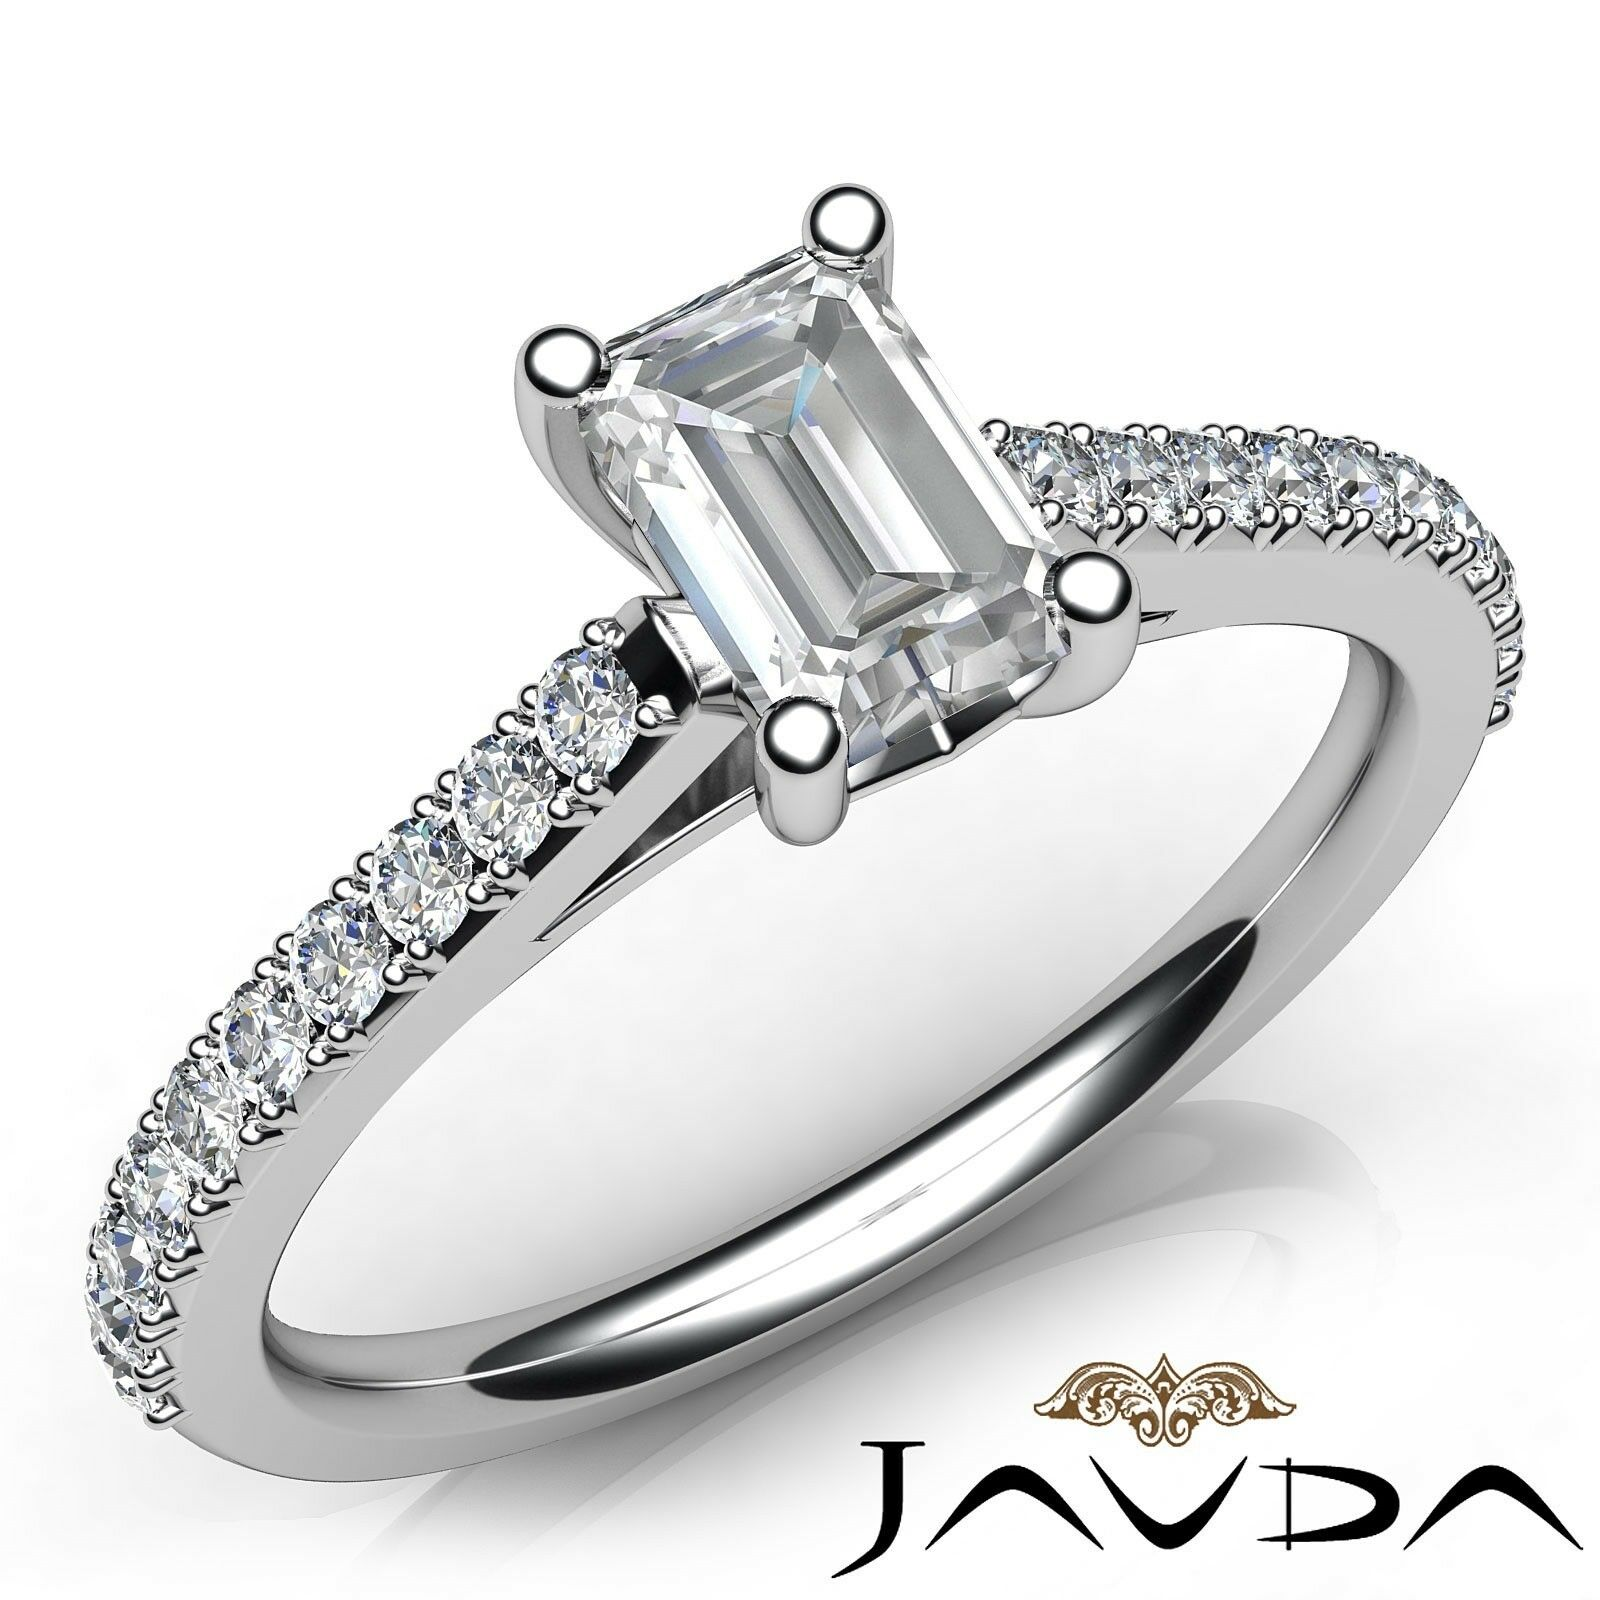 0.8ctw Classic Prong Set Emerald Diamond Engagement Ring GIA H-VS2 White Gold